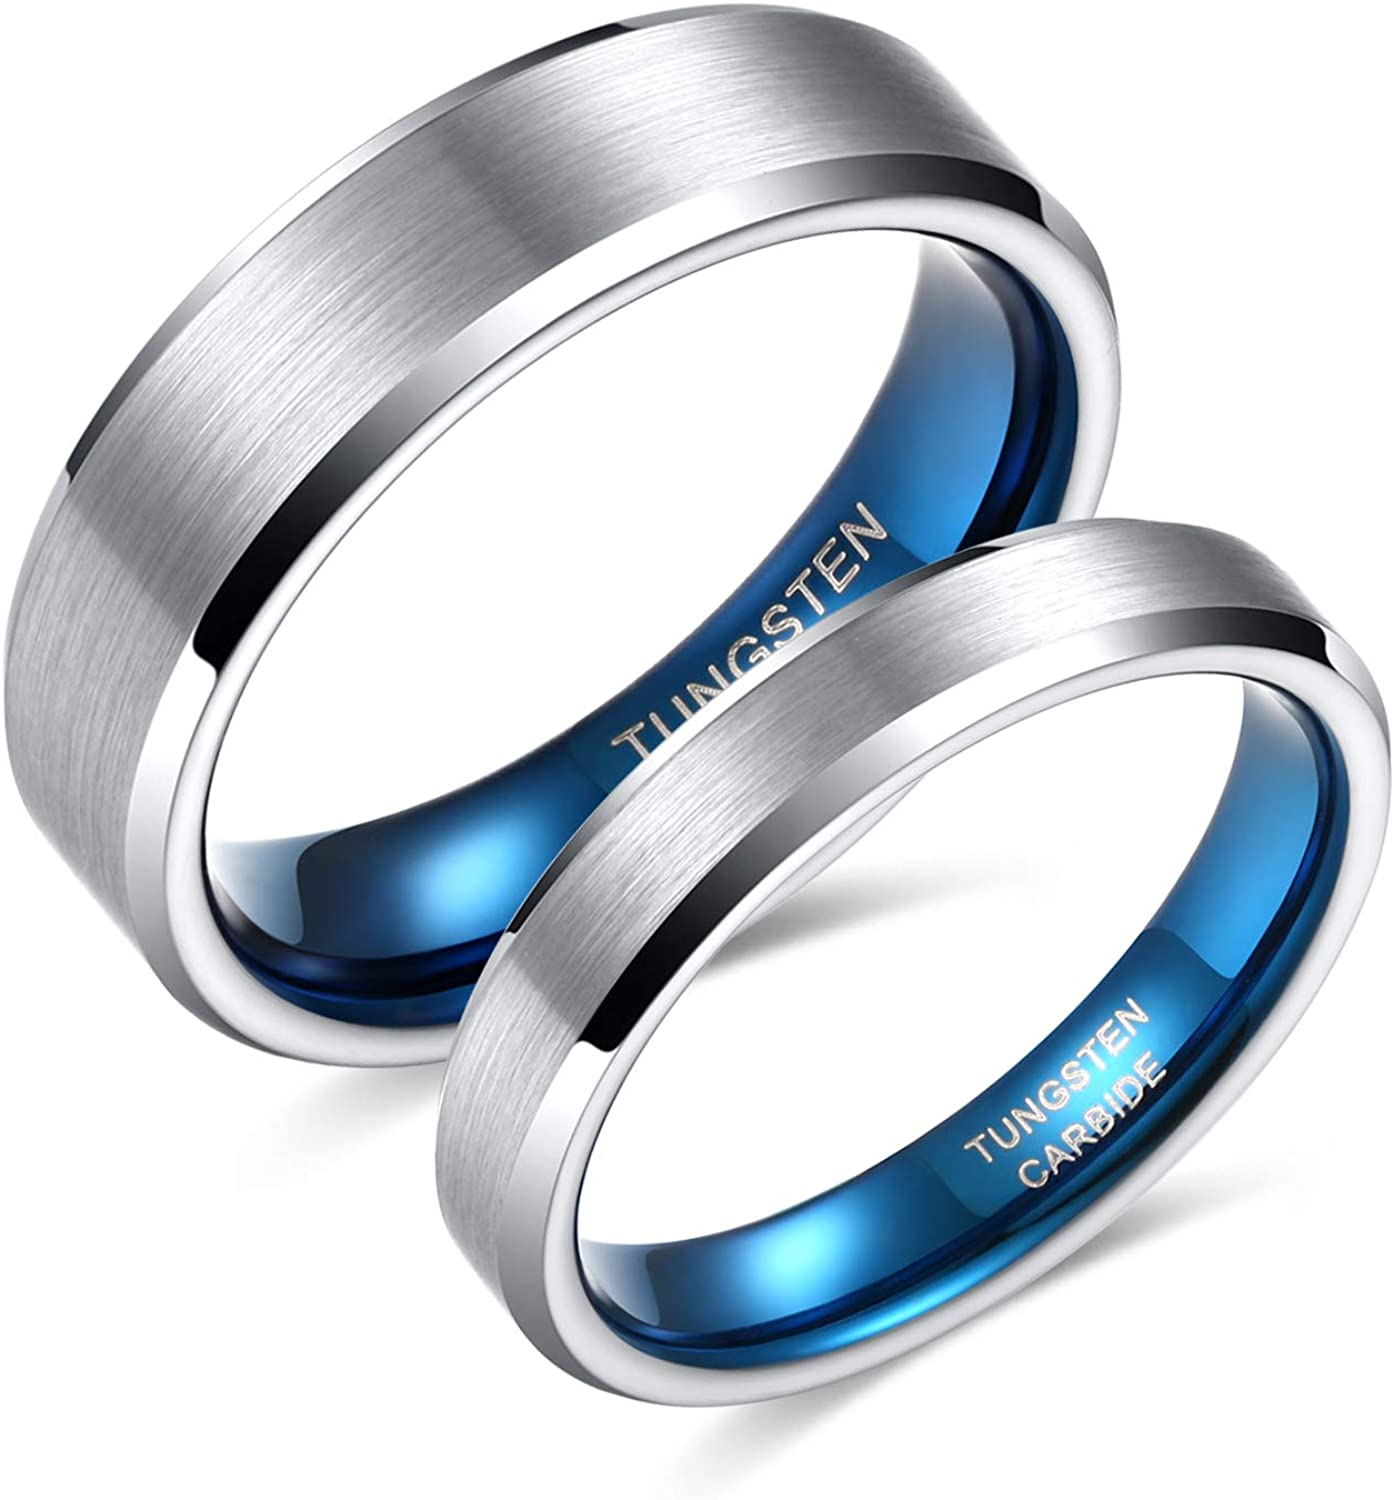 Greenpod 4mm 6mm Tungsten Wedding Band for Women Men Beveled Edge Engagement Rings Silver Blue Comfort Fit Size 4-14